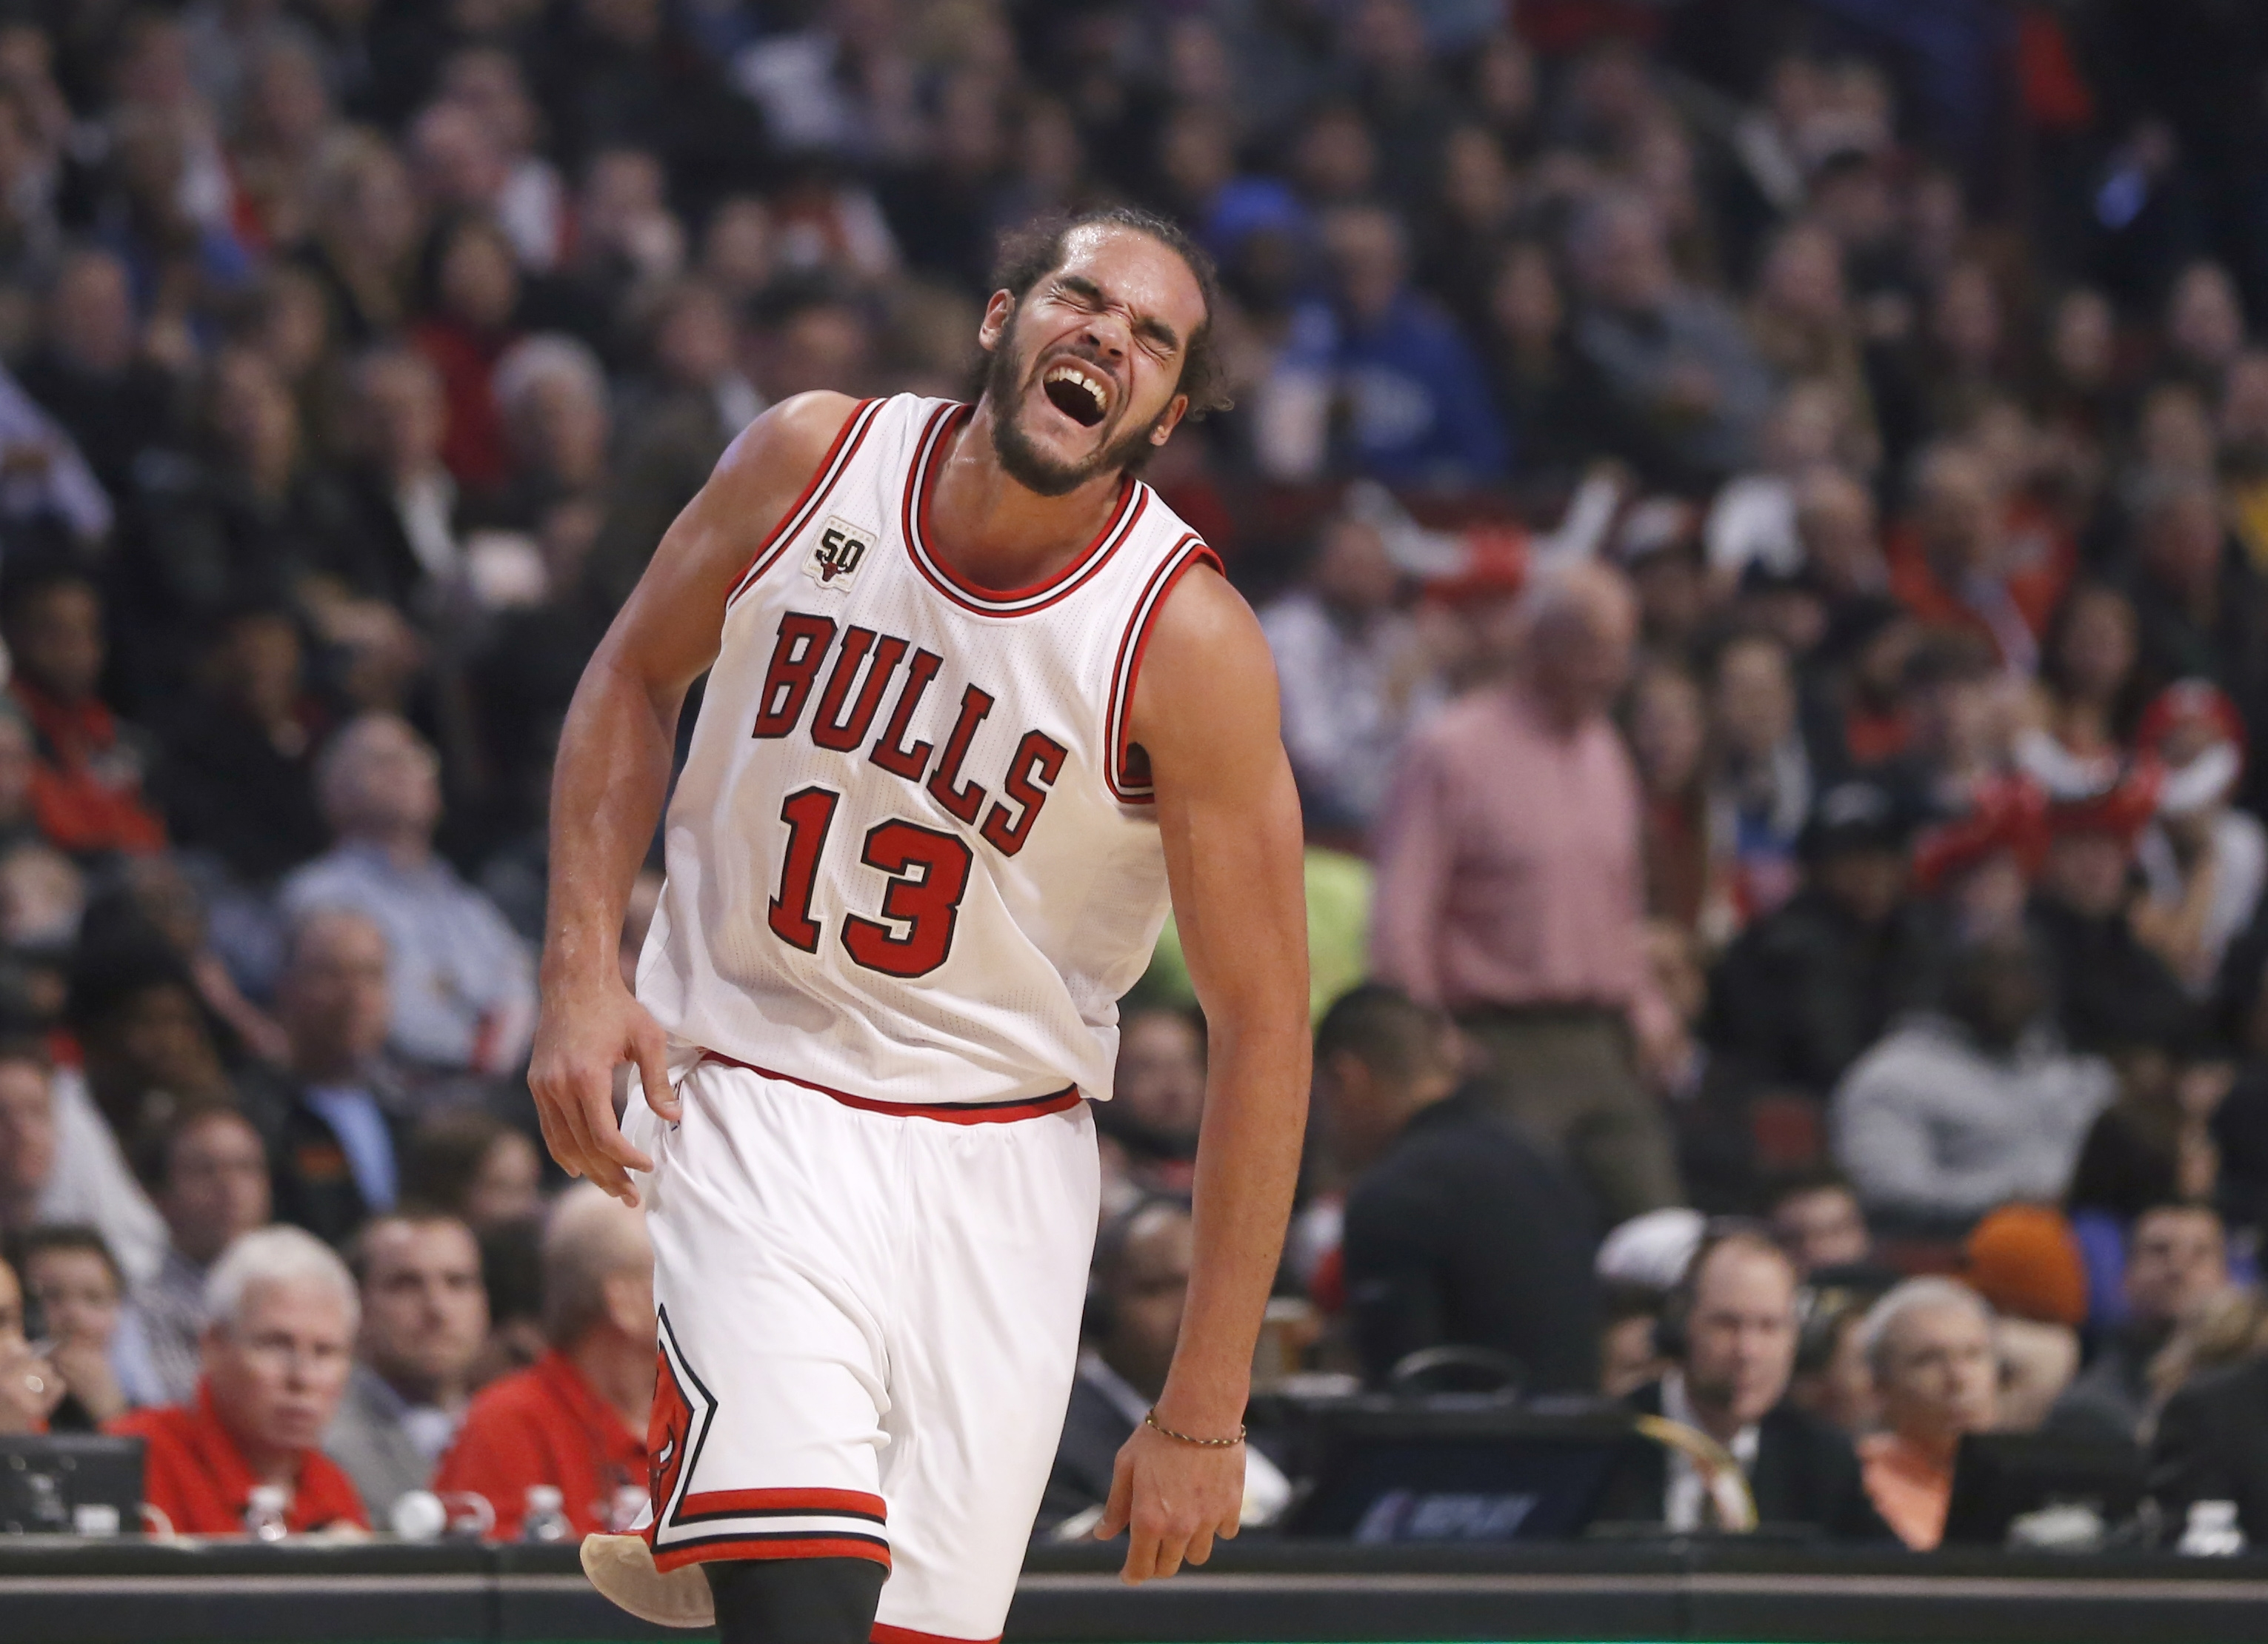 Chicago Bulls center Joakim Noah runs down the court with an apparent injury to his left shoulder during the second half of an NBA basketball game against the Brooklyn Nets on Monday, Dec. 21, 2015, in Chicago. The Nets won 105-102. (AP Photo/Charles Rex